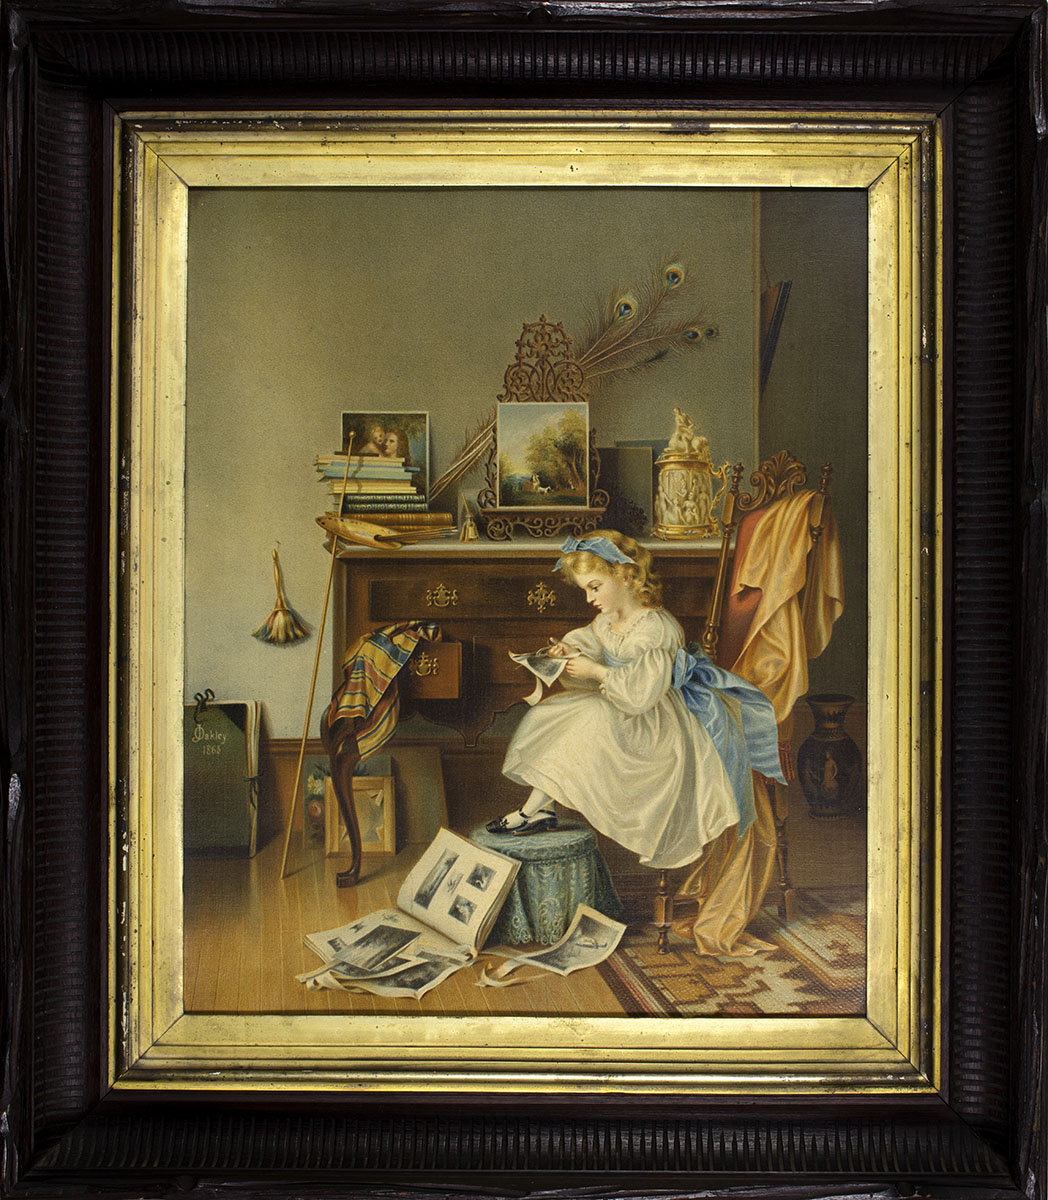 The Little Scrapbook Maker. Chromo-lithograph after an 1865 painting by Juliana Oakley (Chicago,1868). Gift of Ivan Jurin.